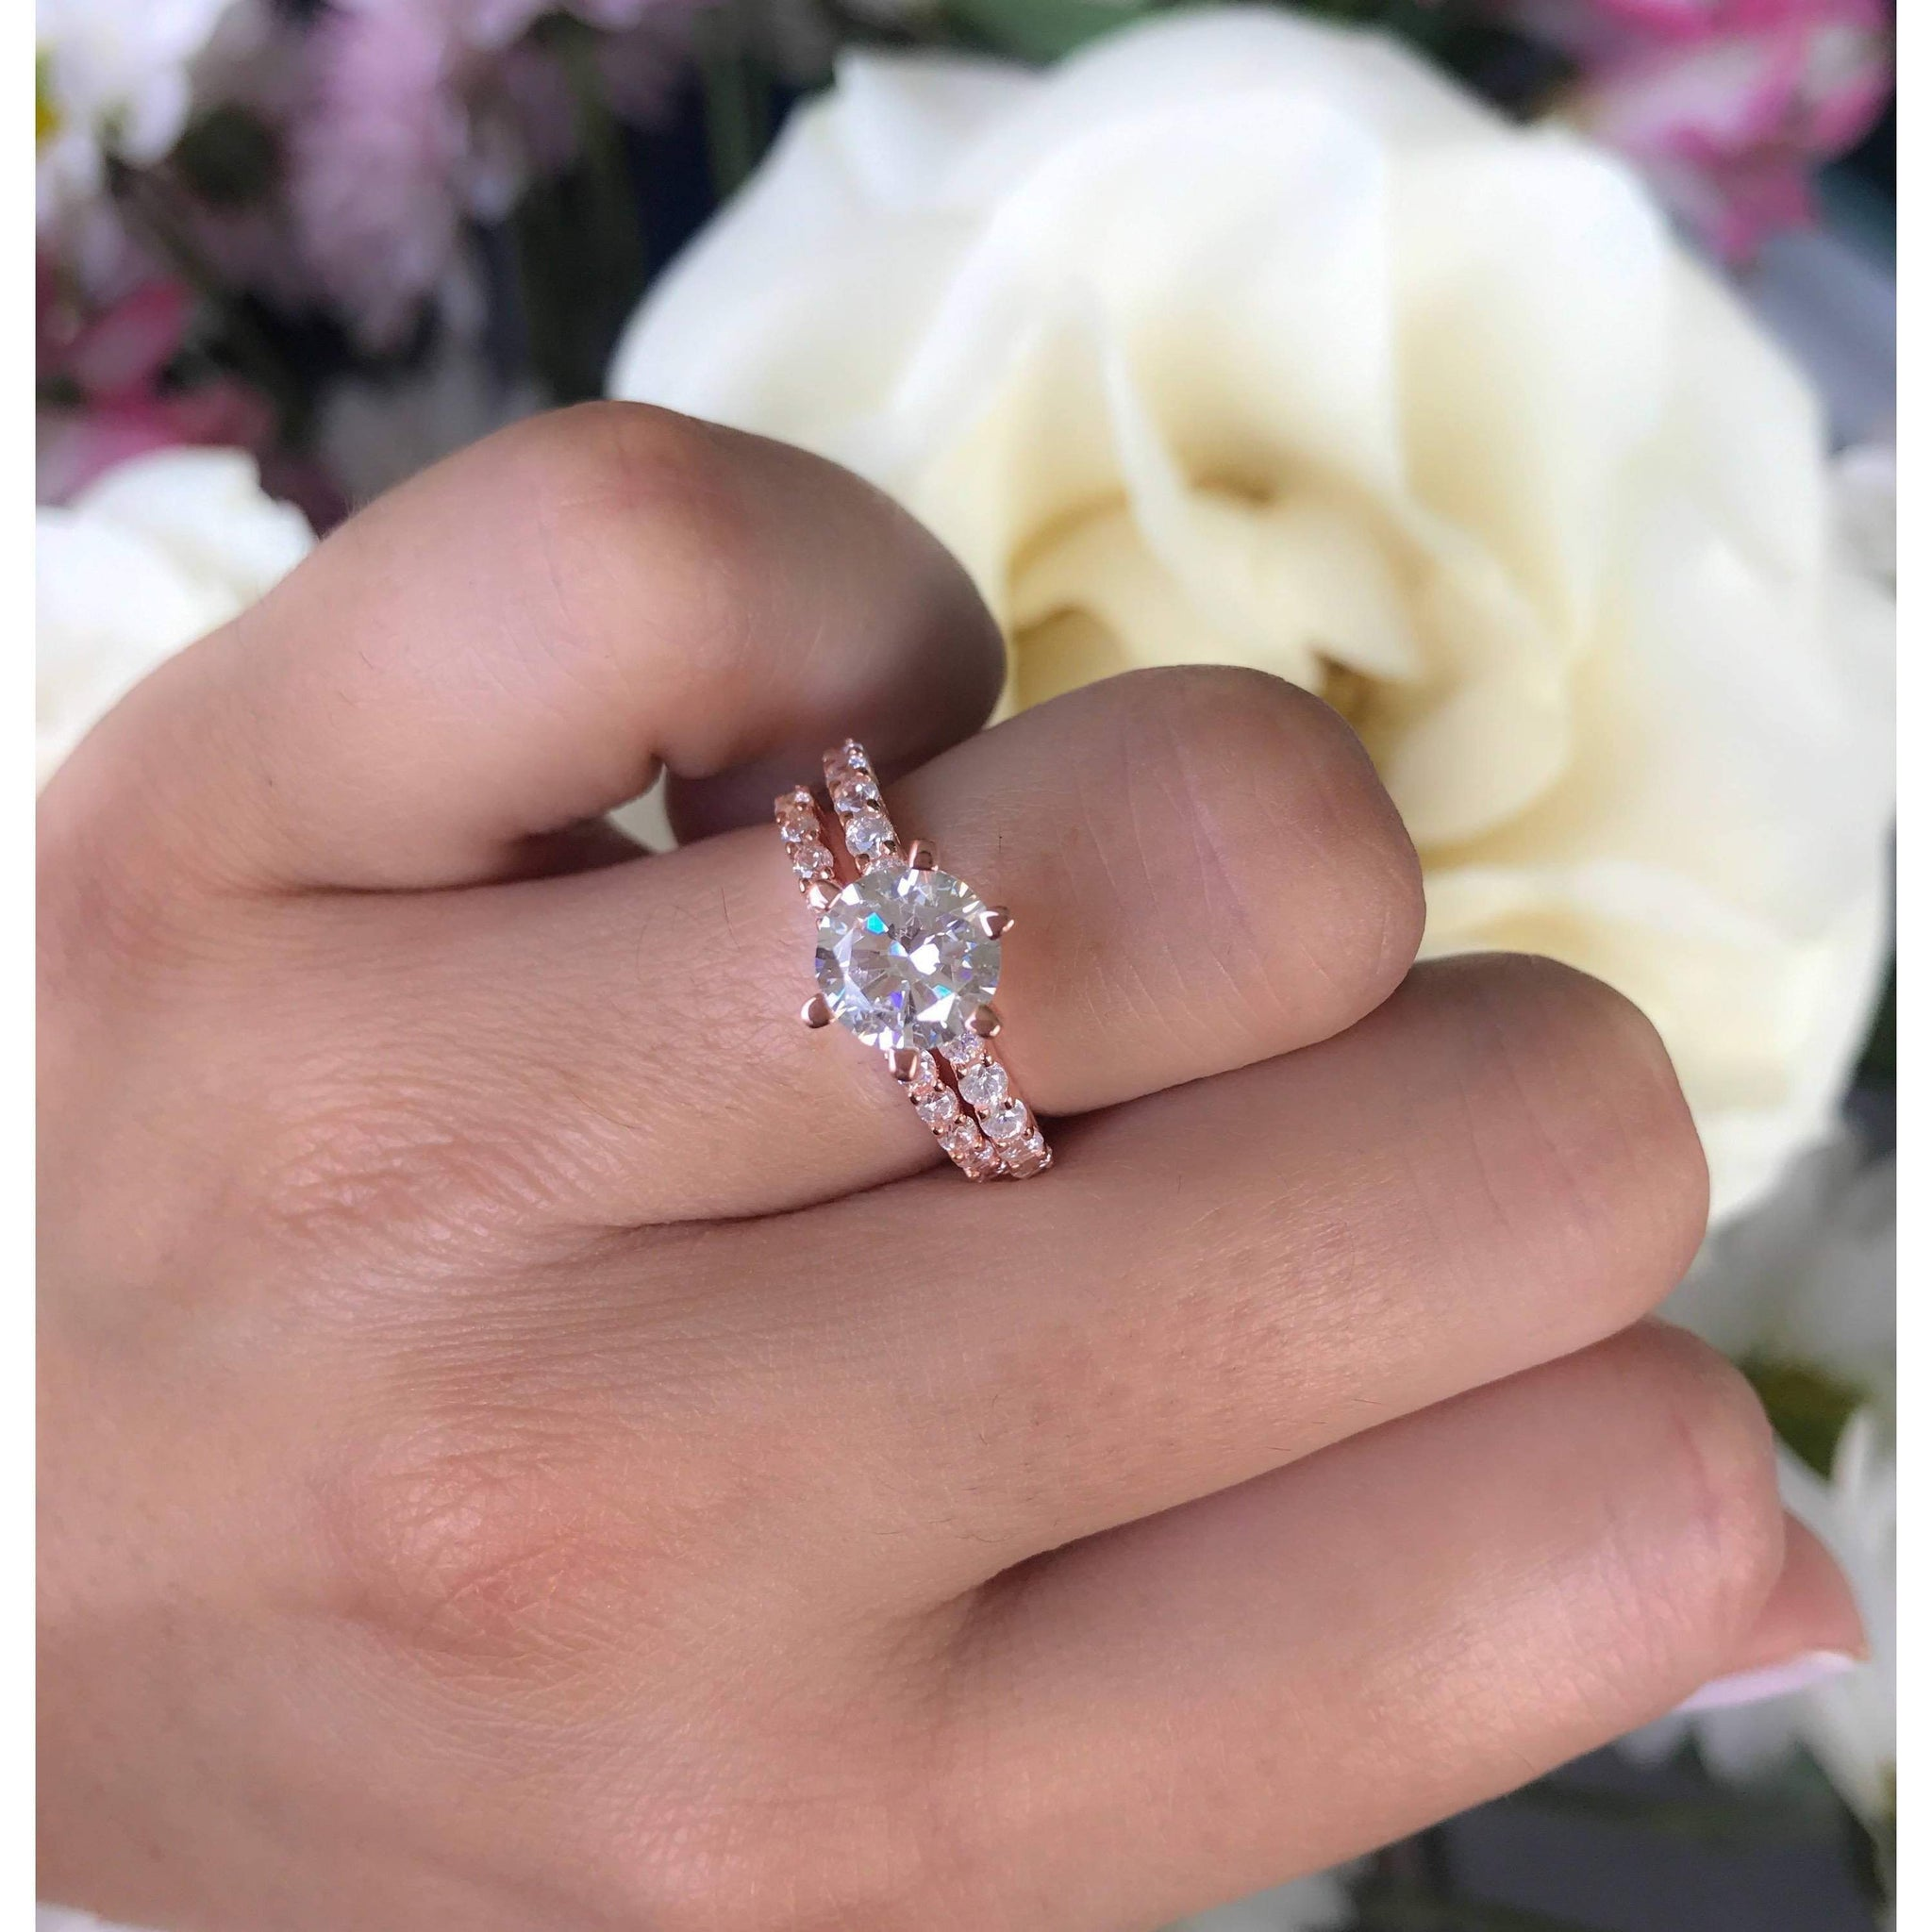 Rose Gold Wedding Rings-2 Carat Diamond Engagement -Solitaire ...